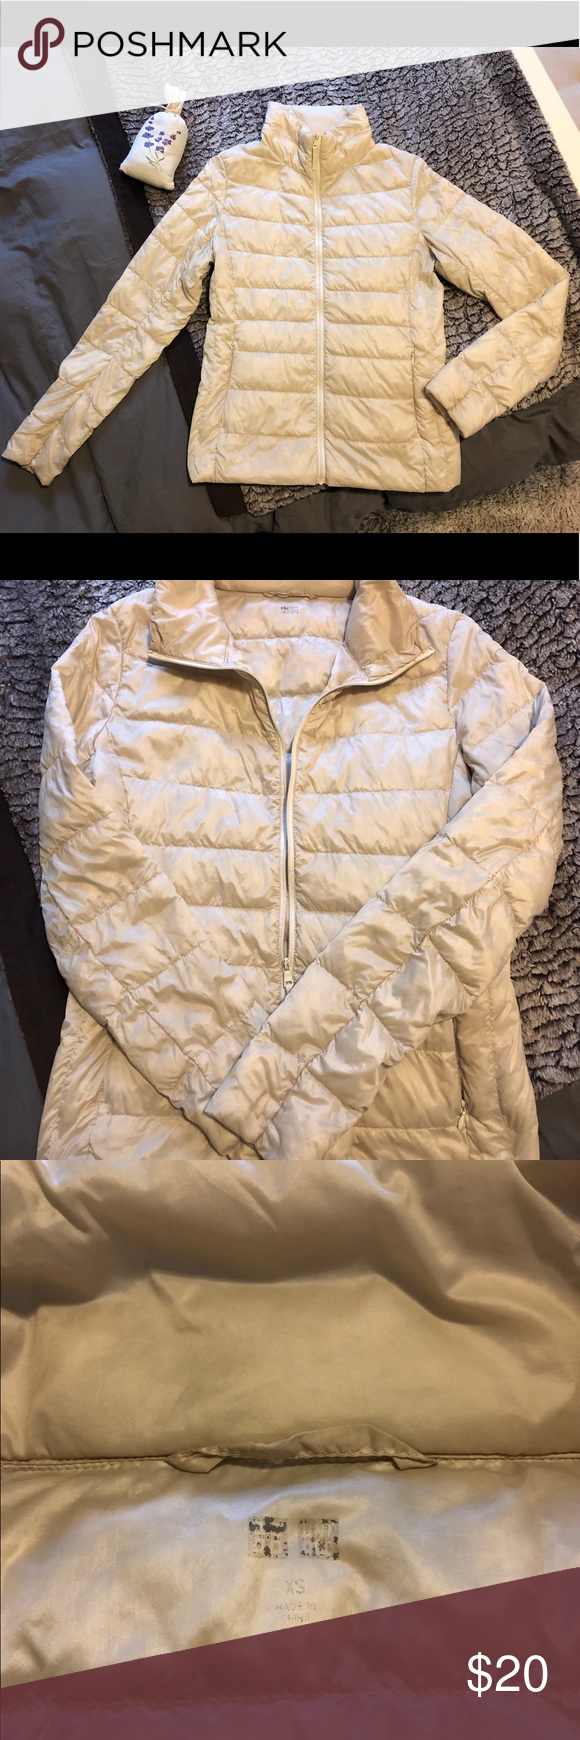 Uniqlo off White ultra compact down zip up jacket Great